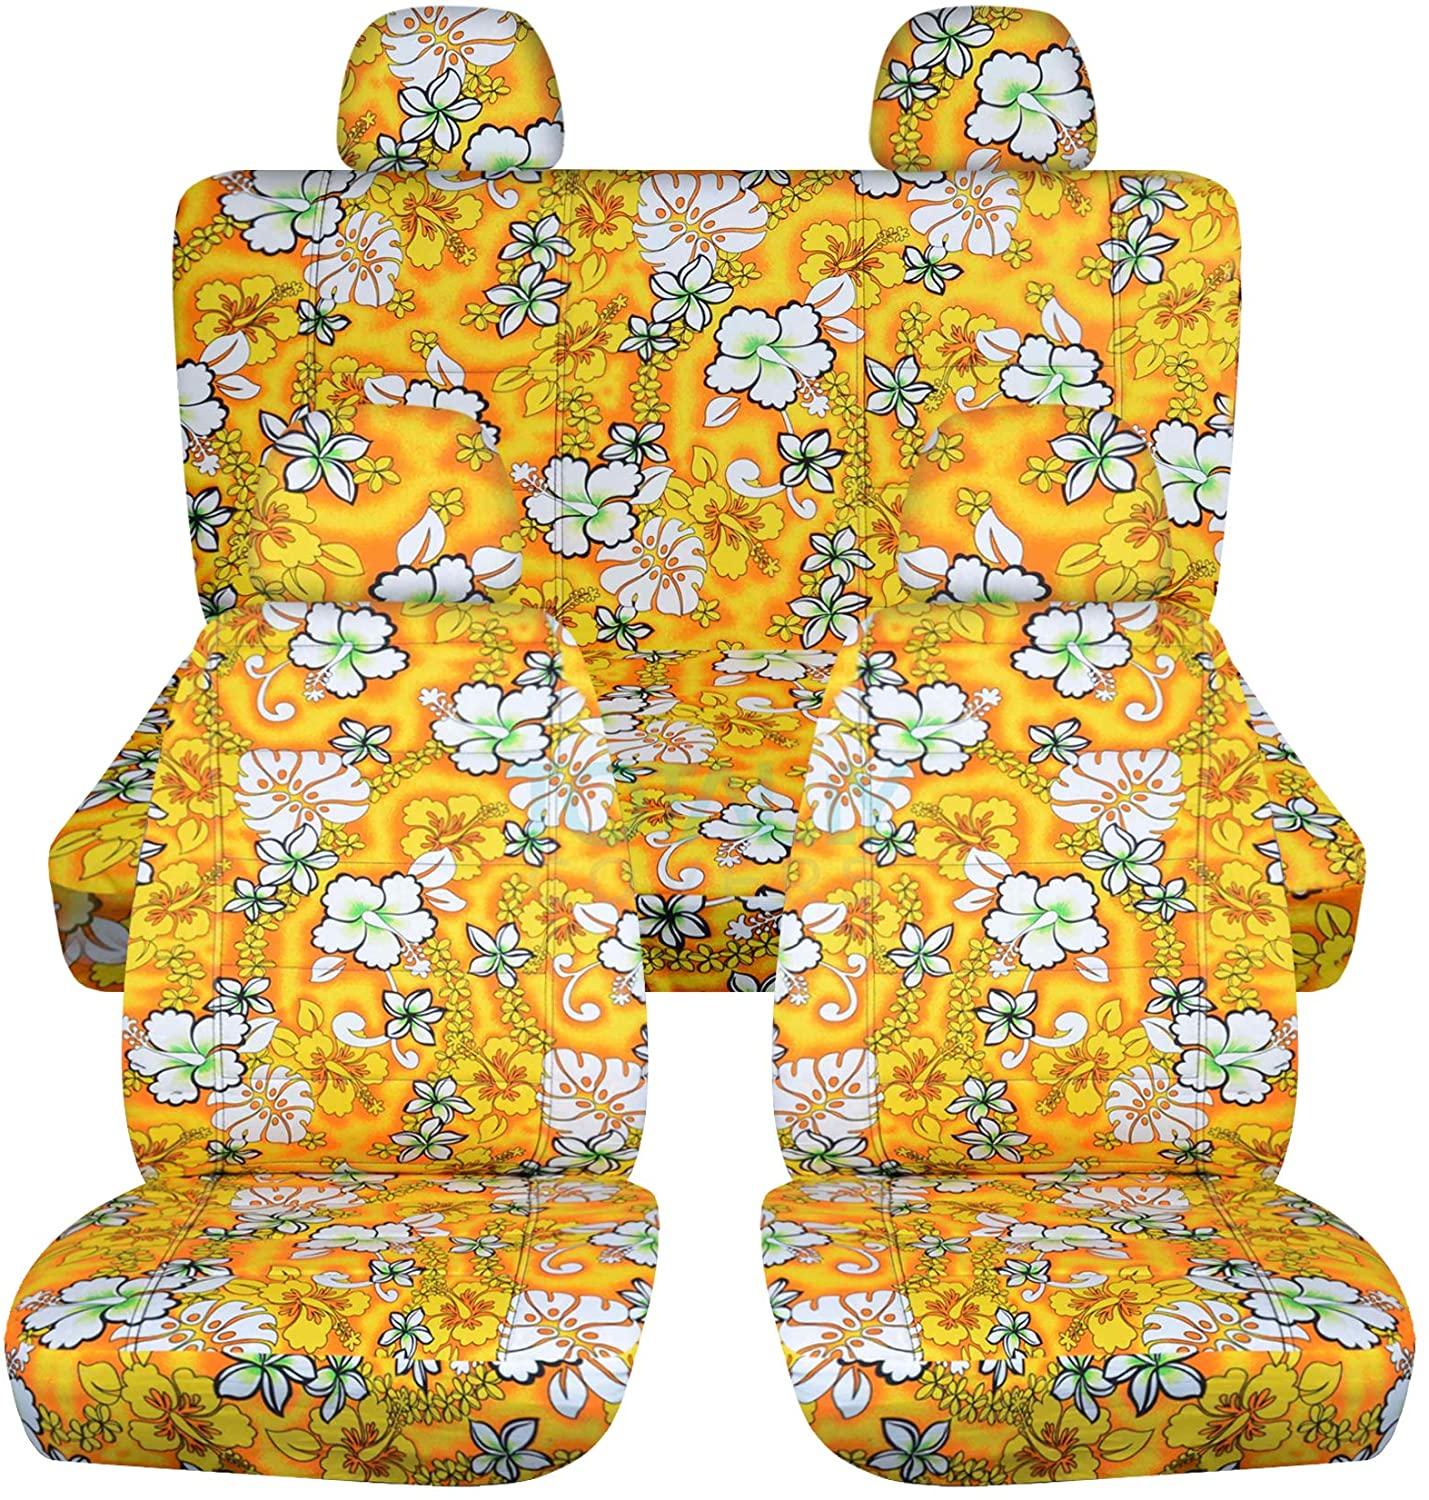 Totally Covers Hawaiian Print Car Seat Covers w 4 (2 Front + 2 Rear) Headrest Covers: Yellow w Flowers - Semi-Custom Fit - Full Set - Will Make Fit Any Car/Truck/Van/RV/SUV (6 Prints)